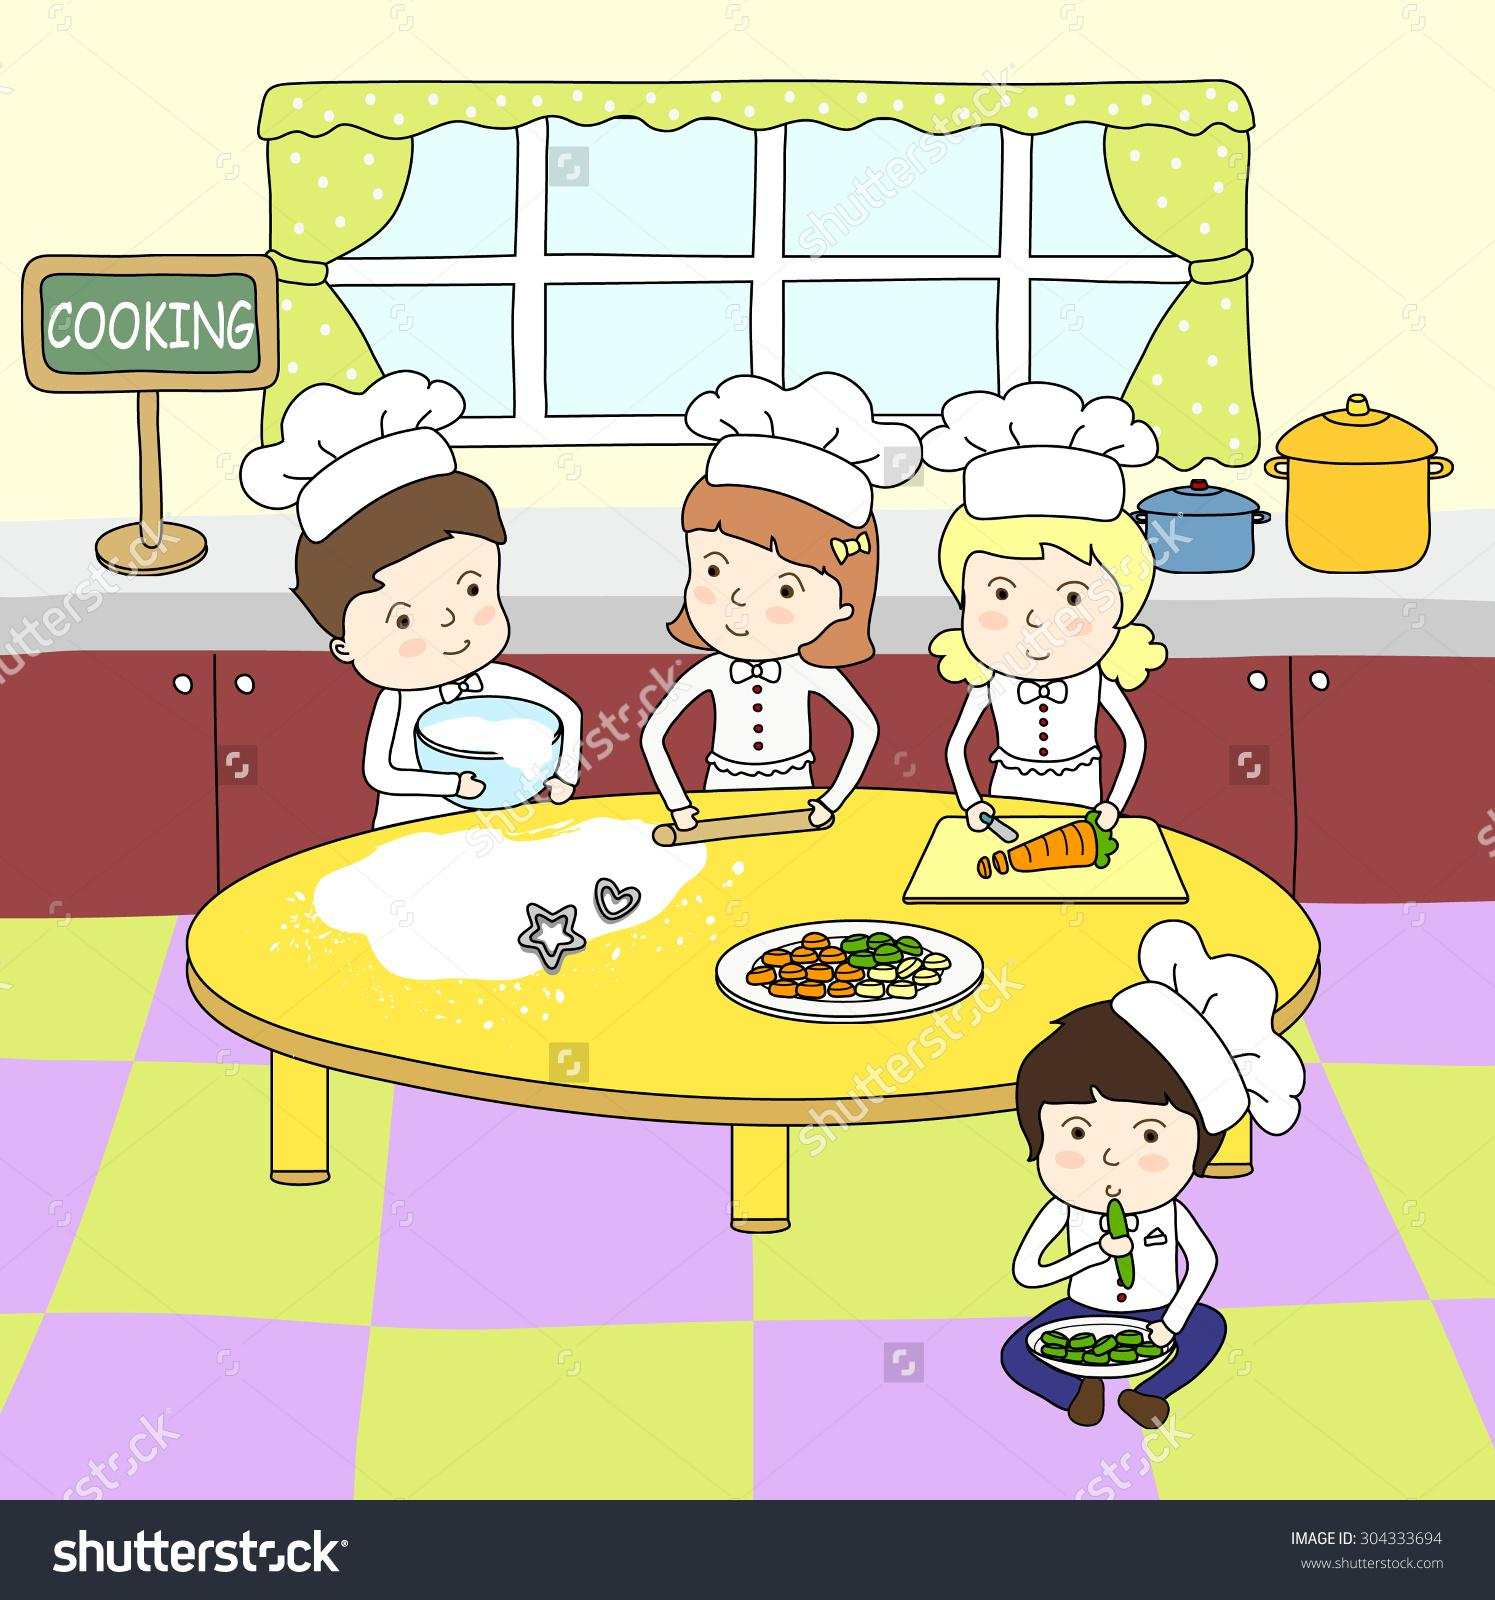 Adult cooking class clipart free transparent library Free Cooking Class Cliparts, Download Free Clip Art, Free Clip Art ... transparent library